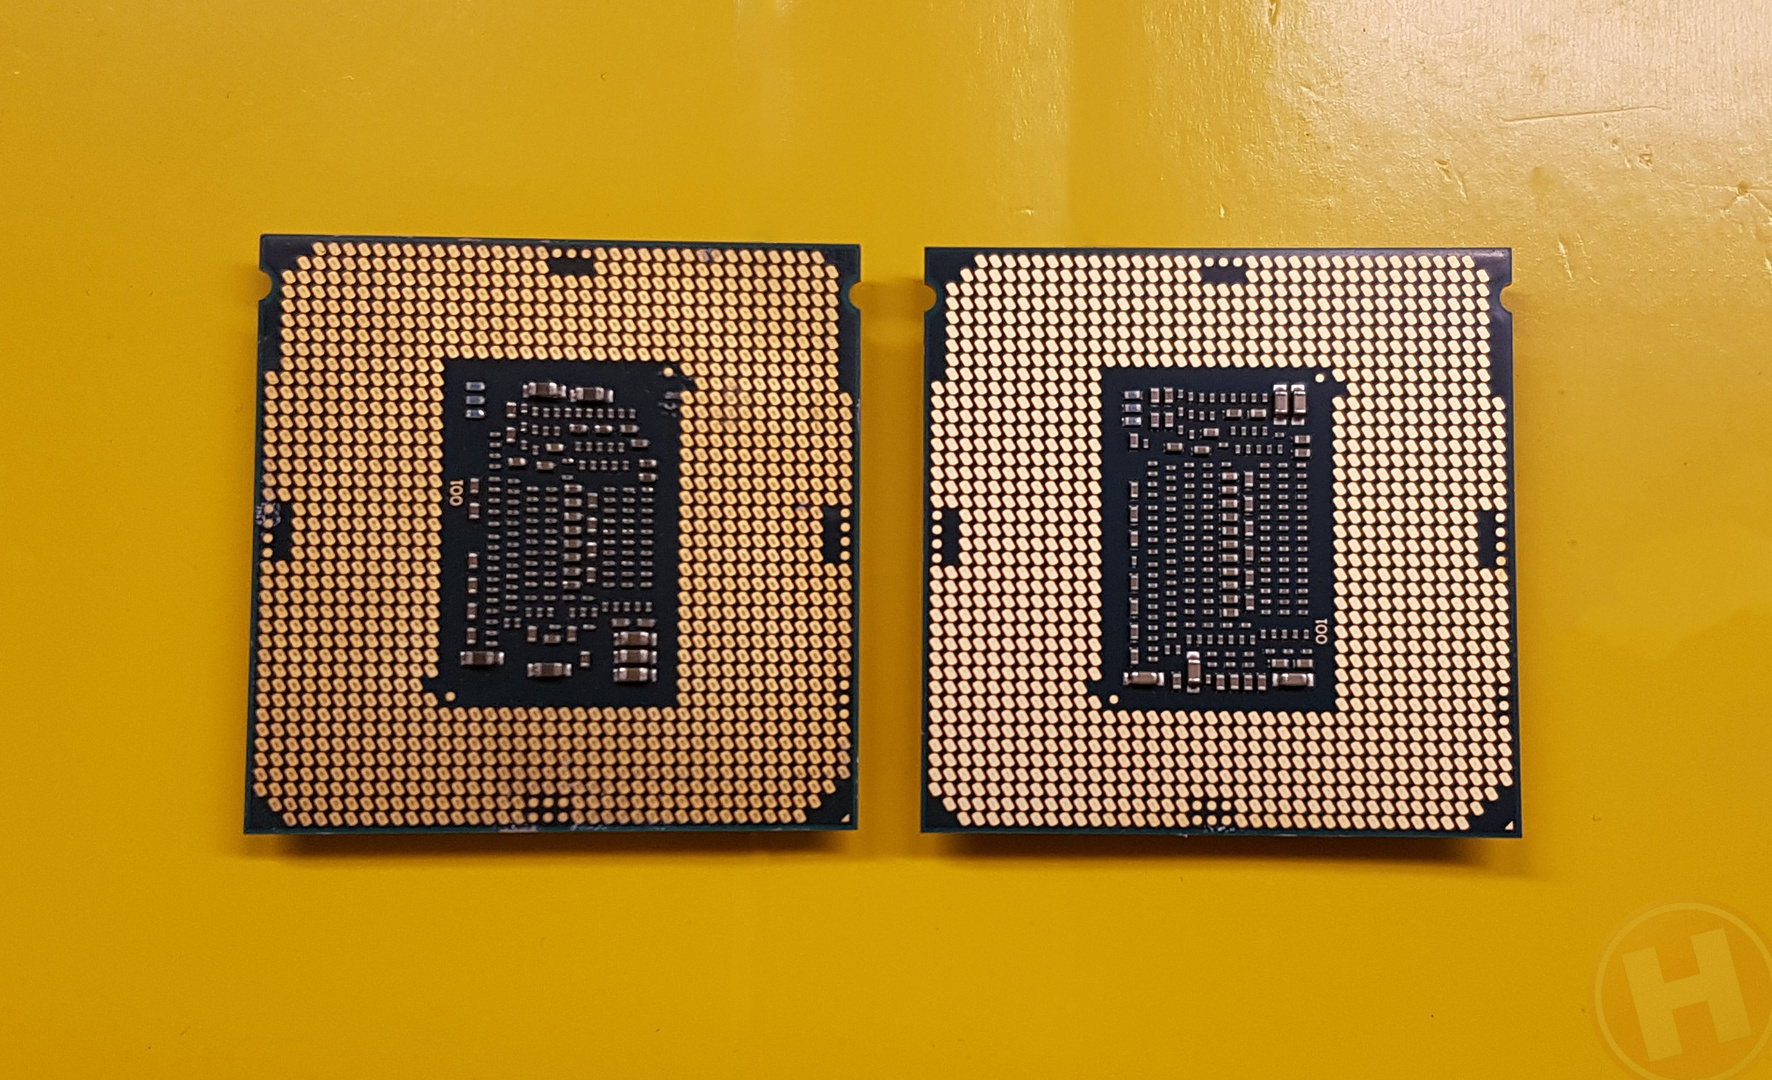 Confirmed] Coffee Lake fits on Z270 motherboards